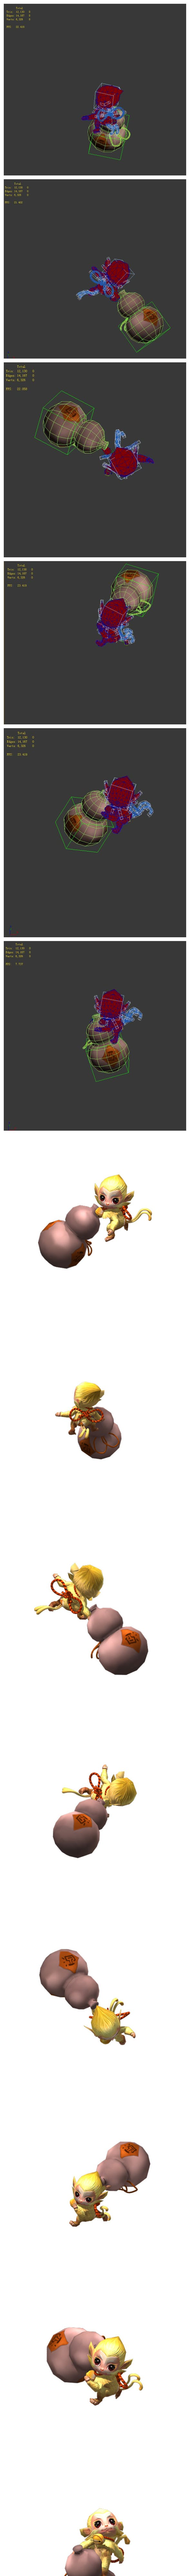 Game animated characters - small monkey - 3DOcean Item for Sale